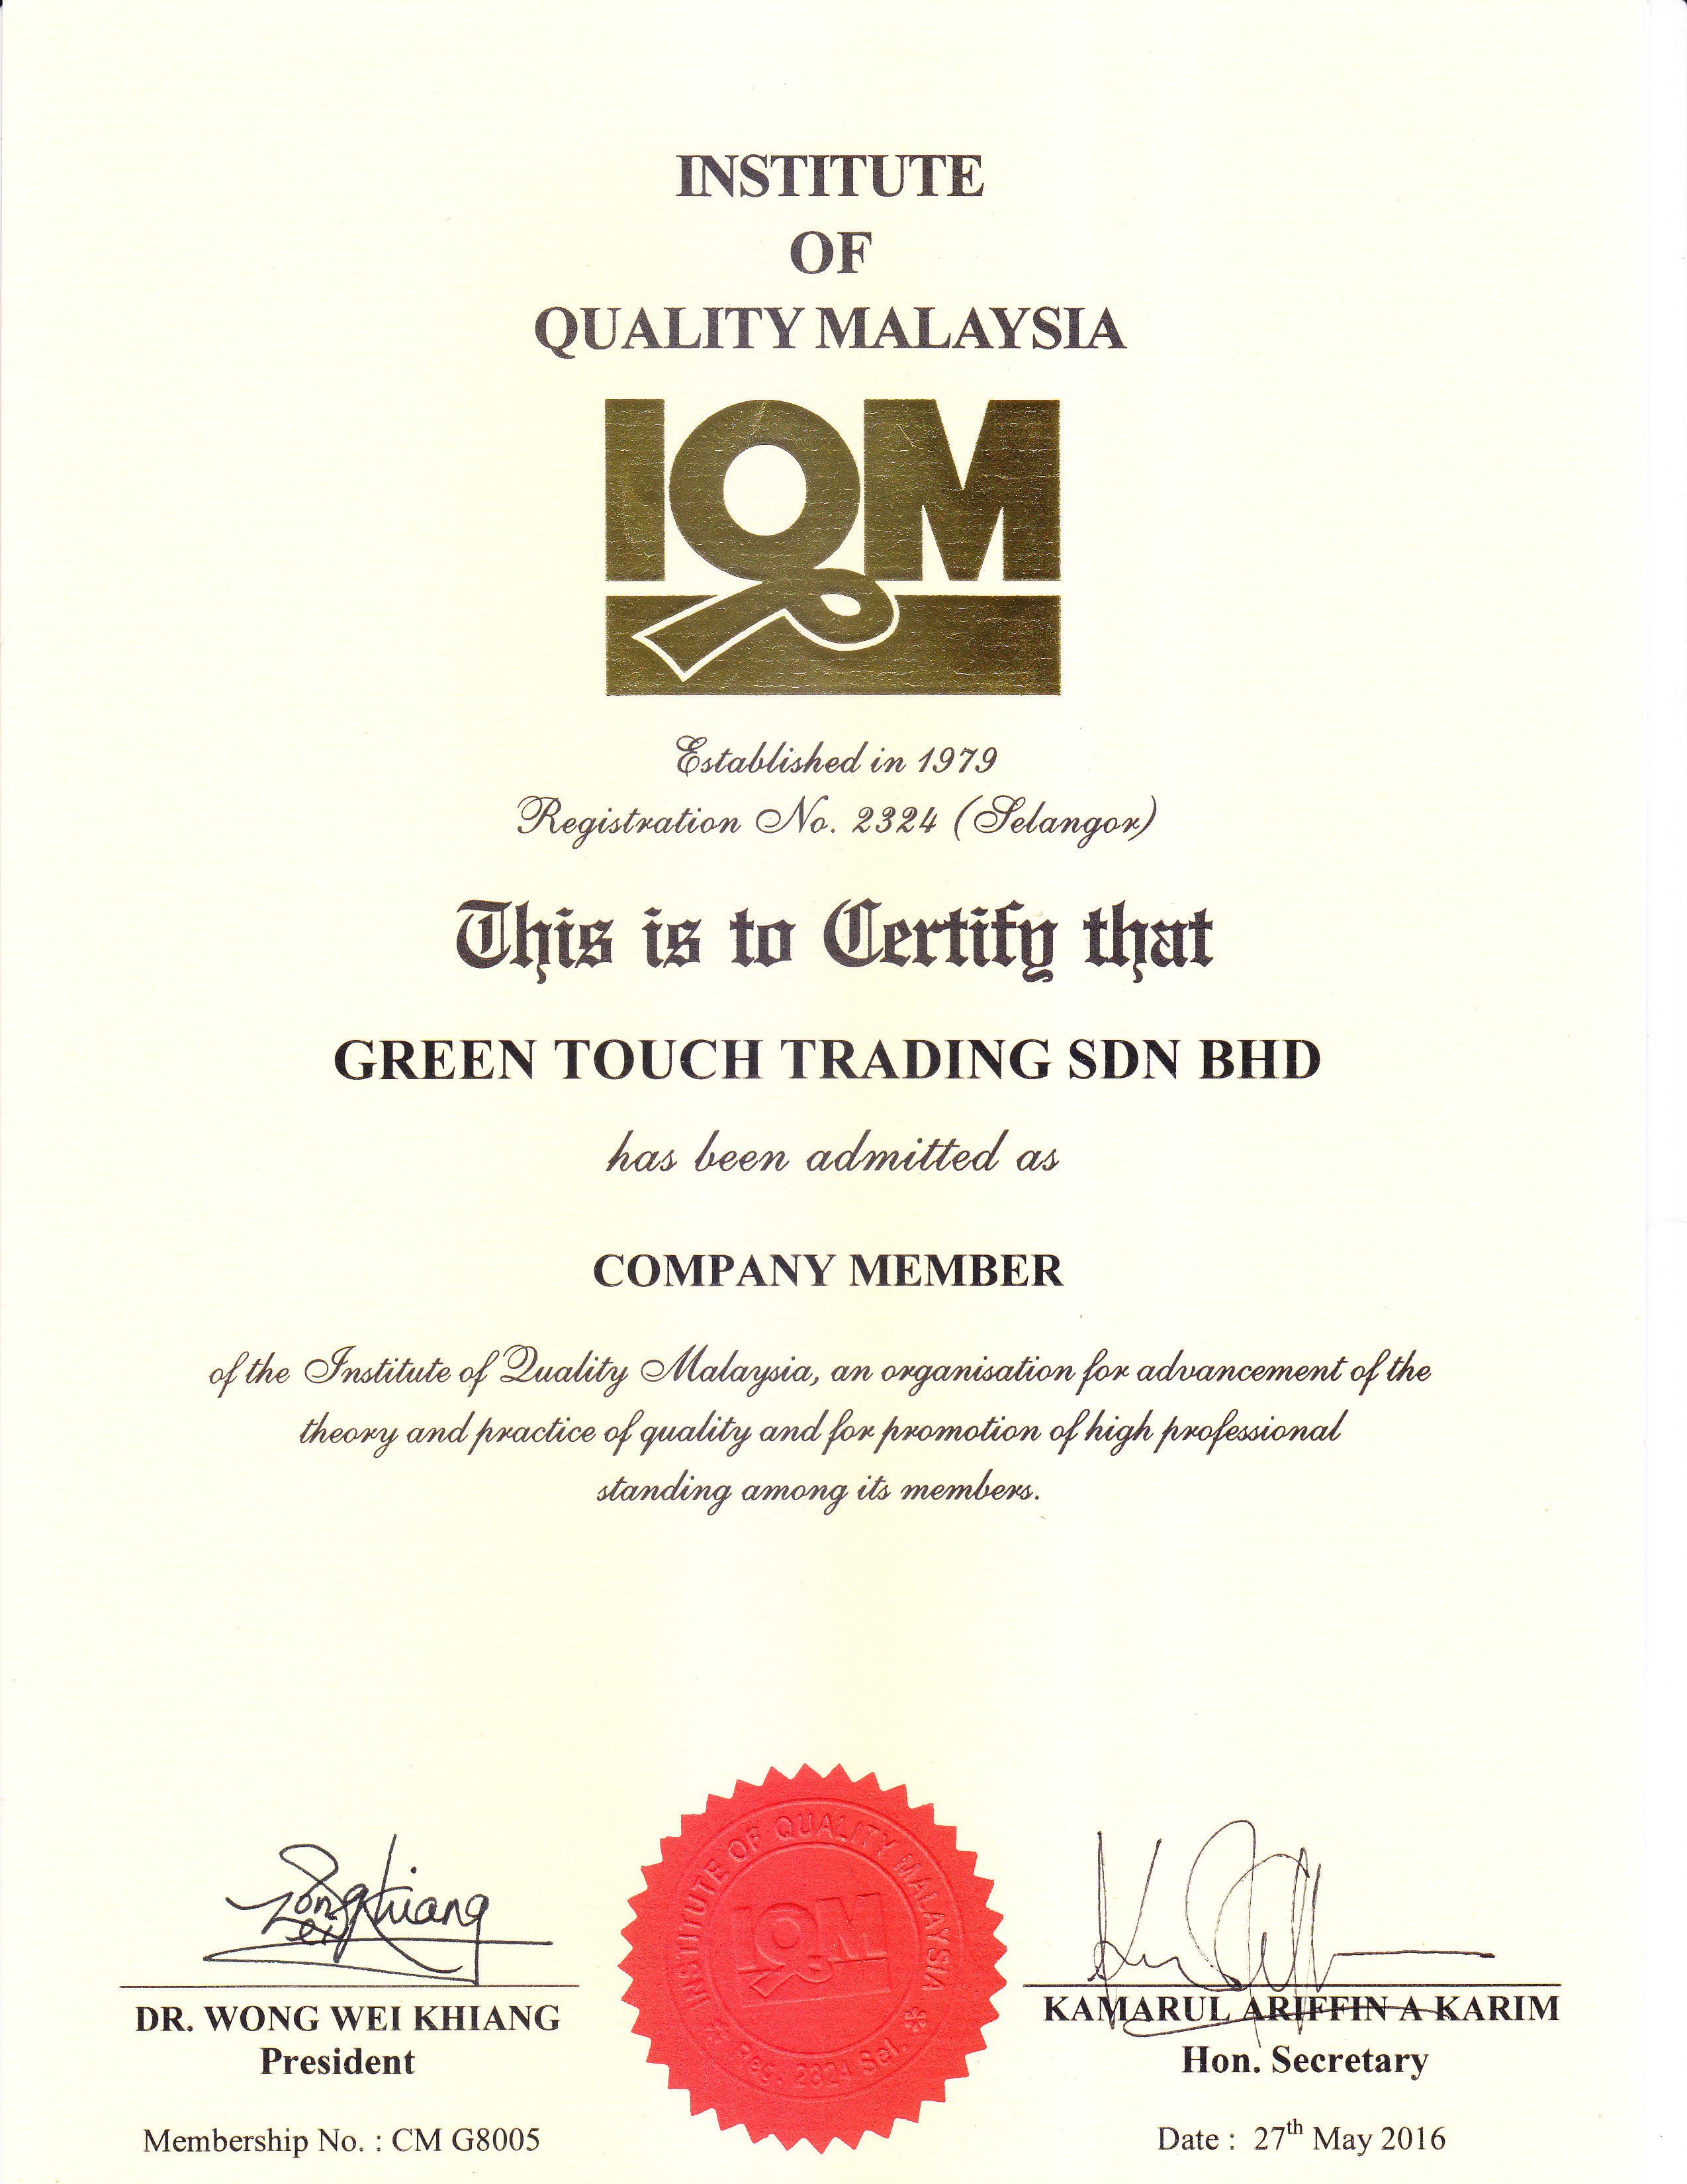 Green Touch Trading Sdn Bhd